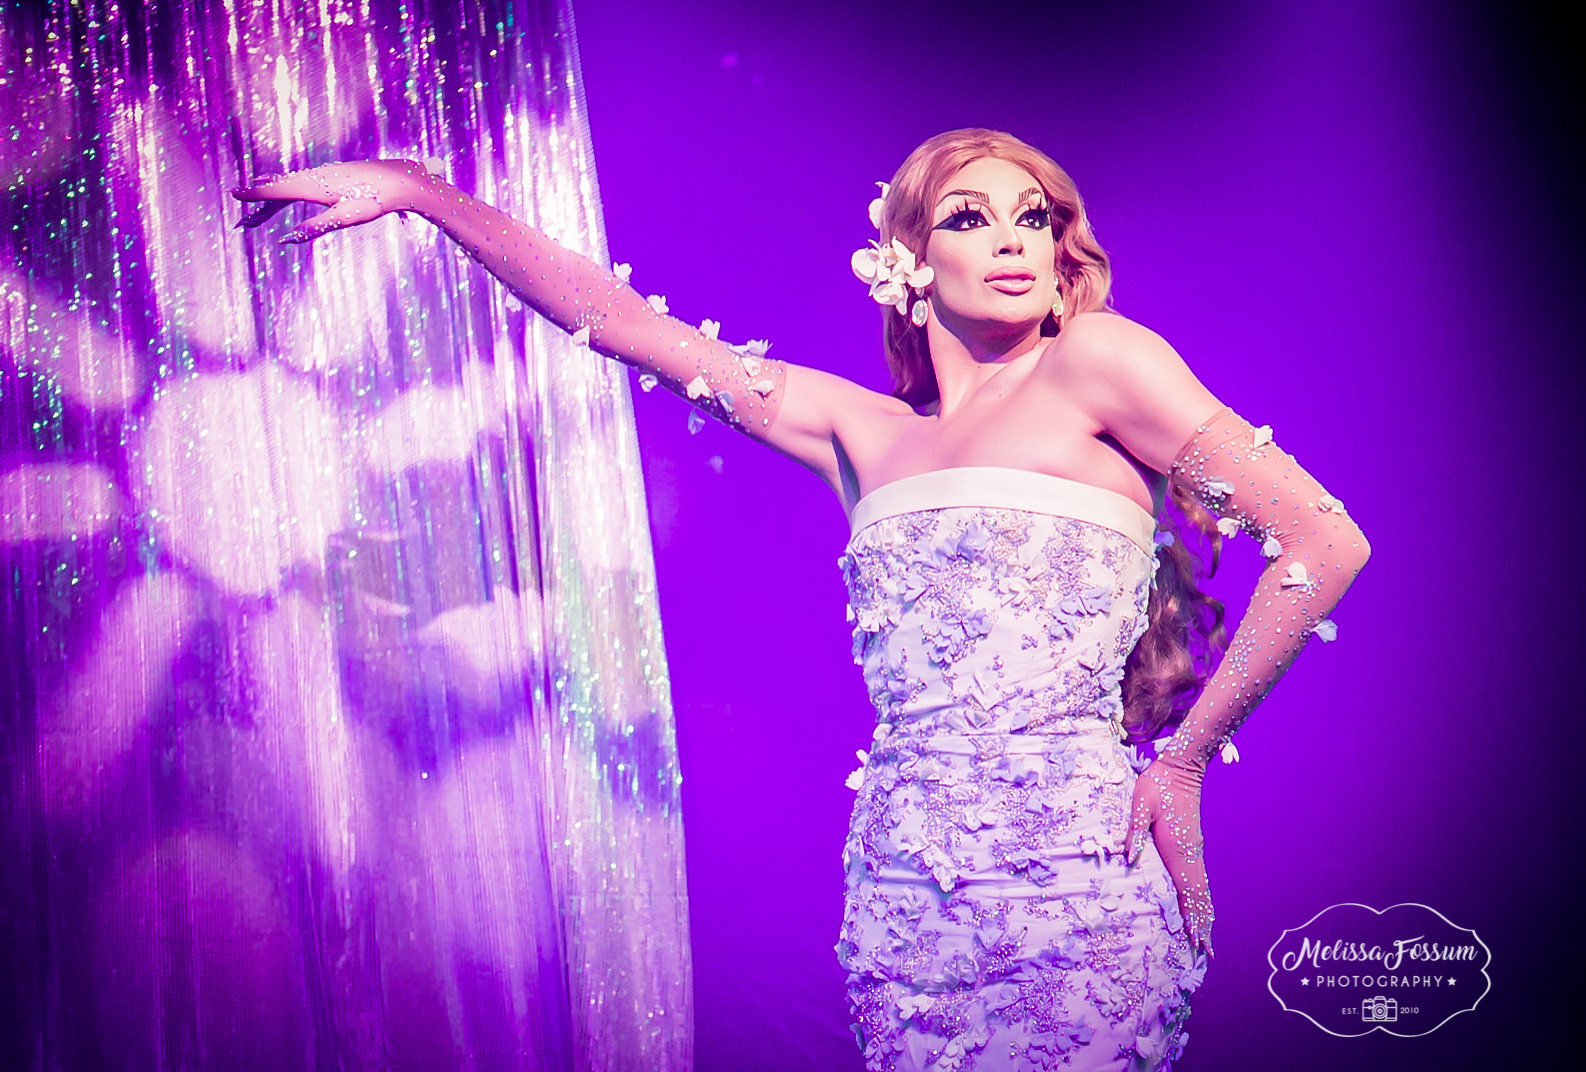 Valentina at Charlie's Phoenix: Photo by Melissa Fossum